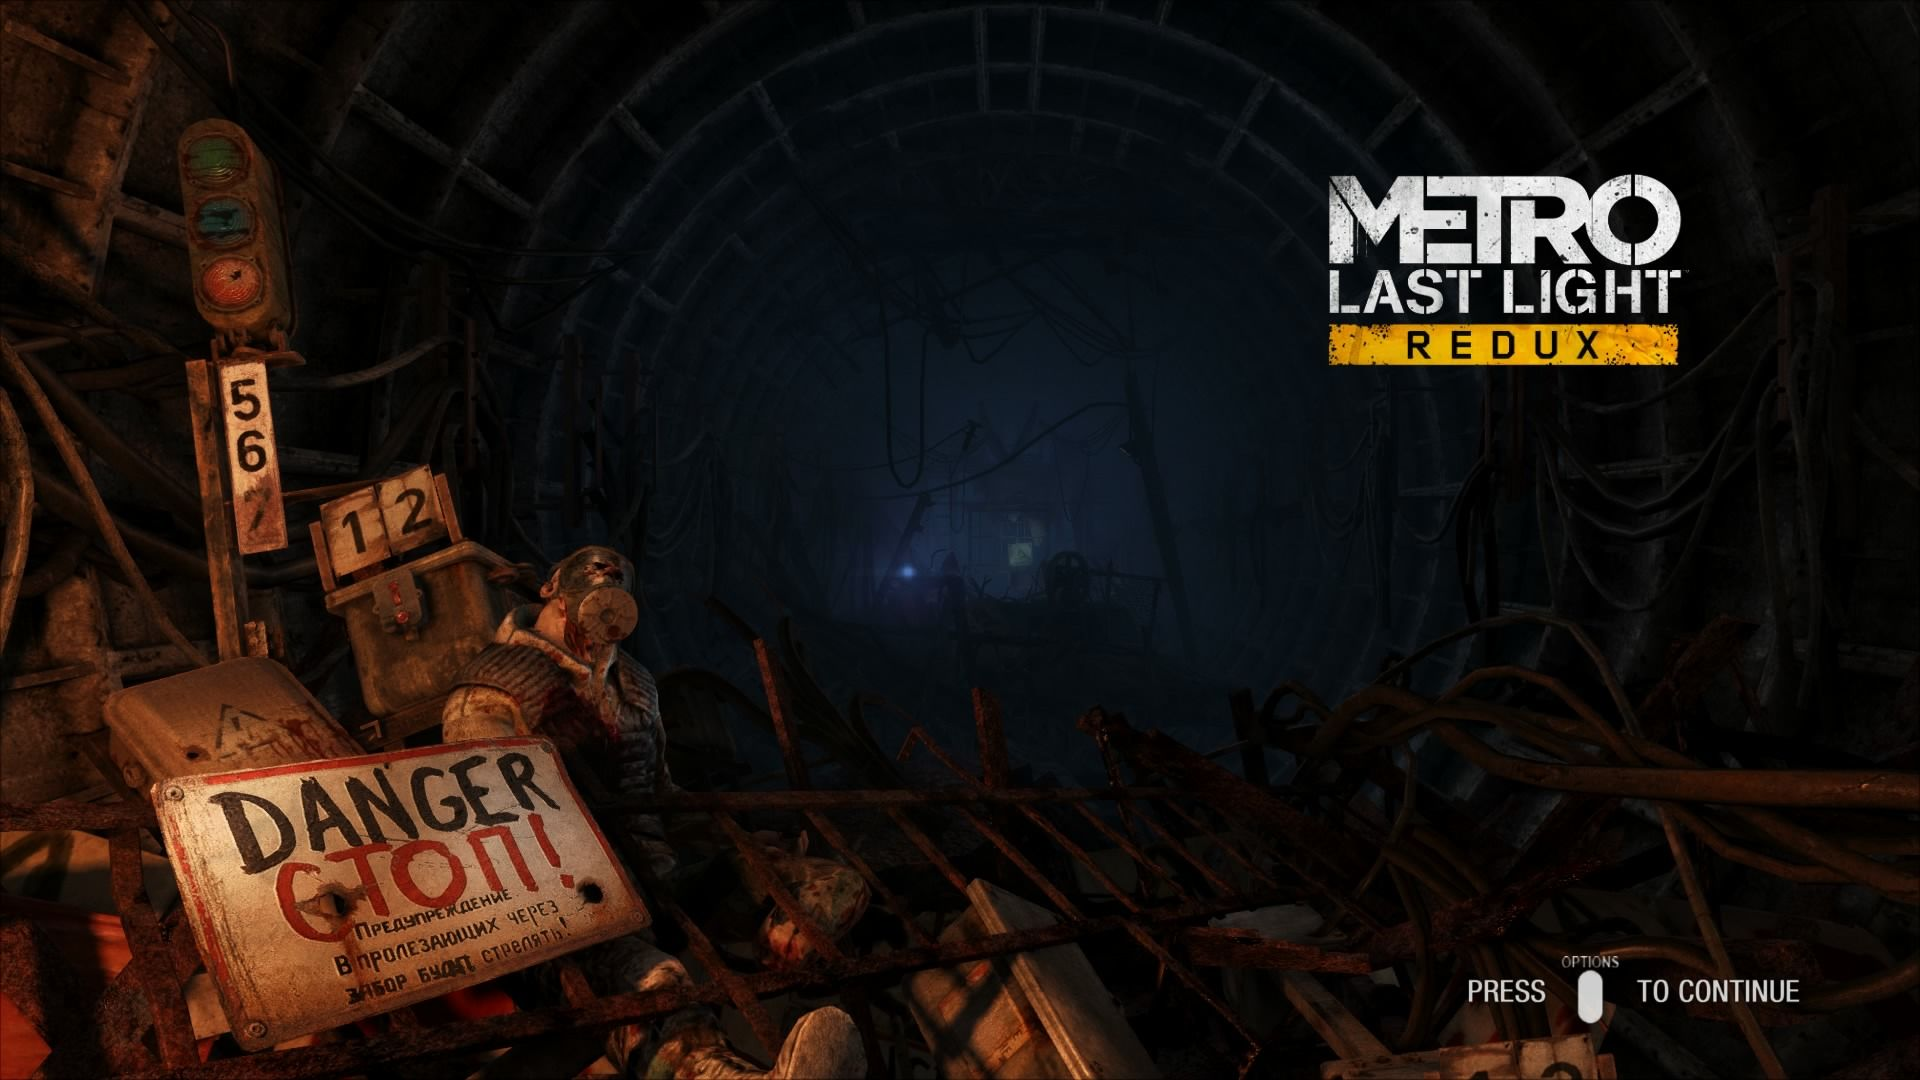 Metro Last Light Redux Screenshots For Playstation 4 Mobygames